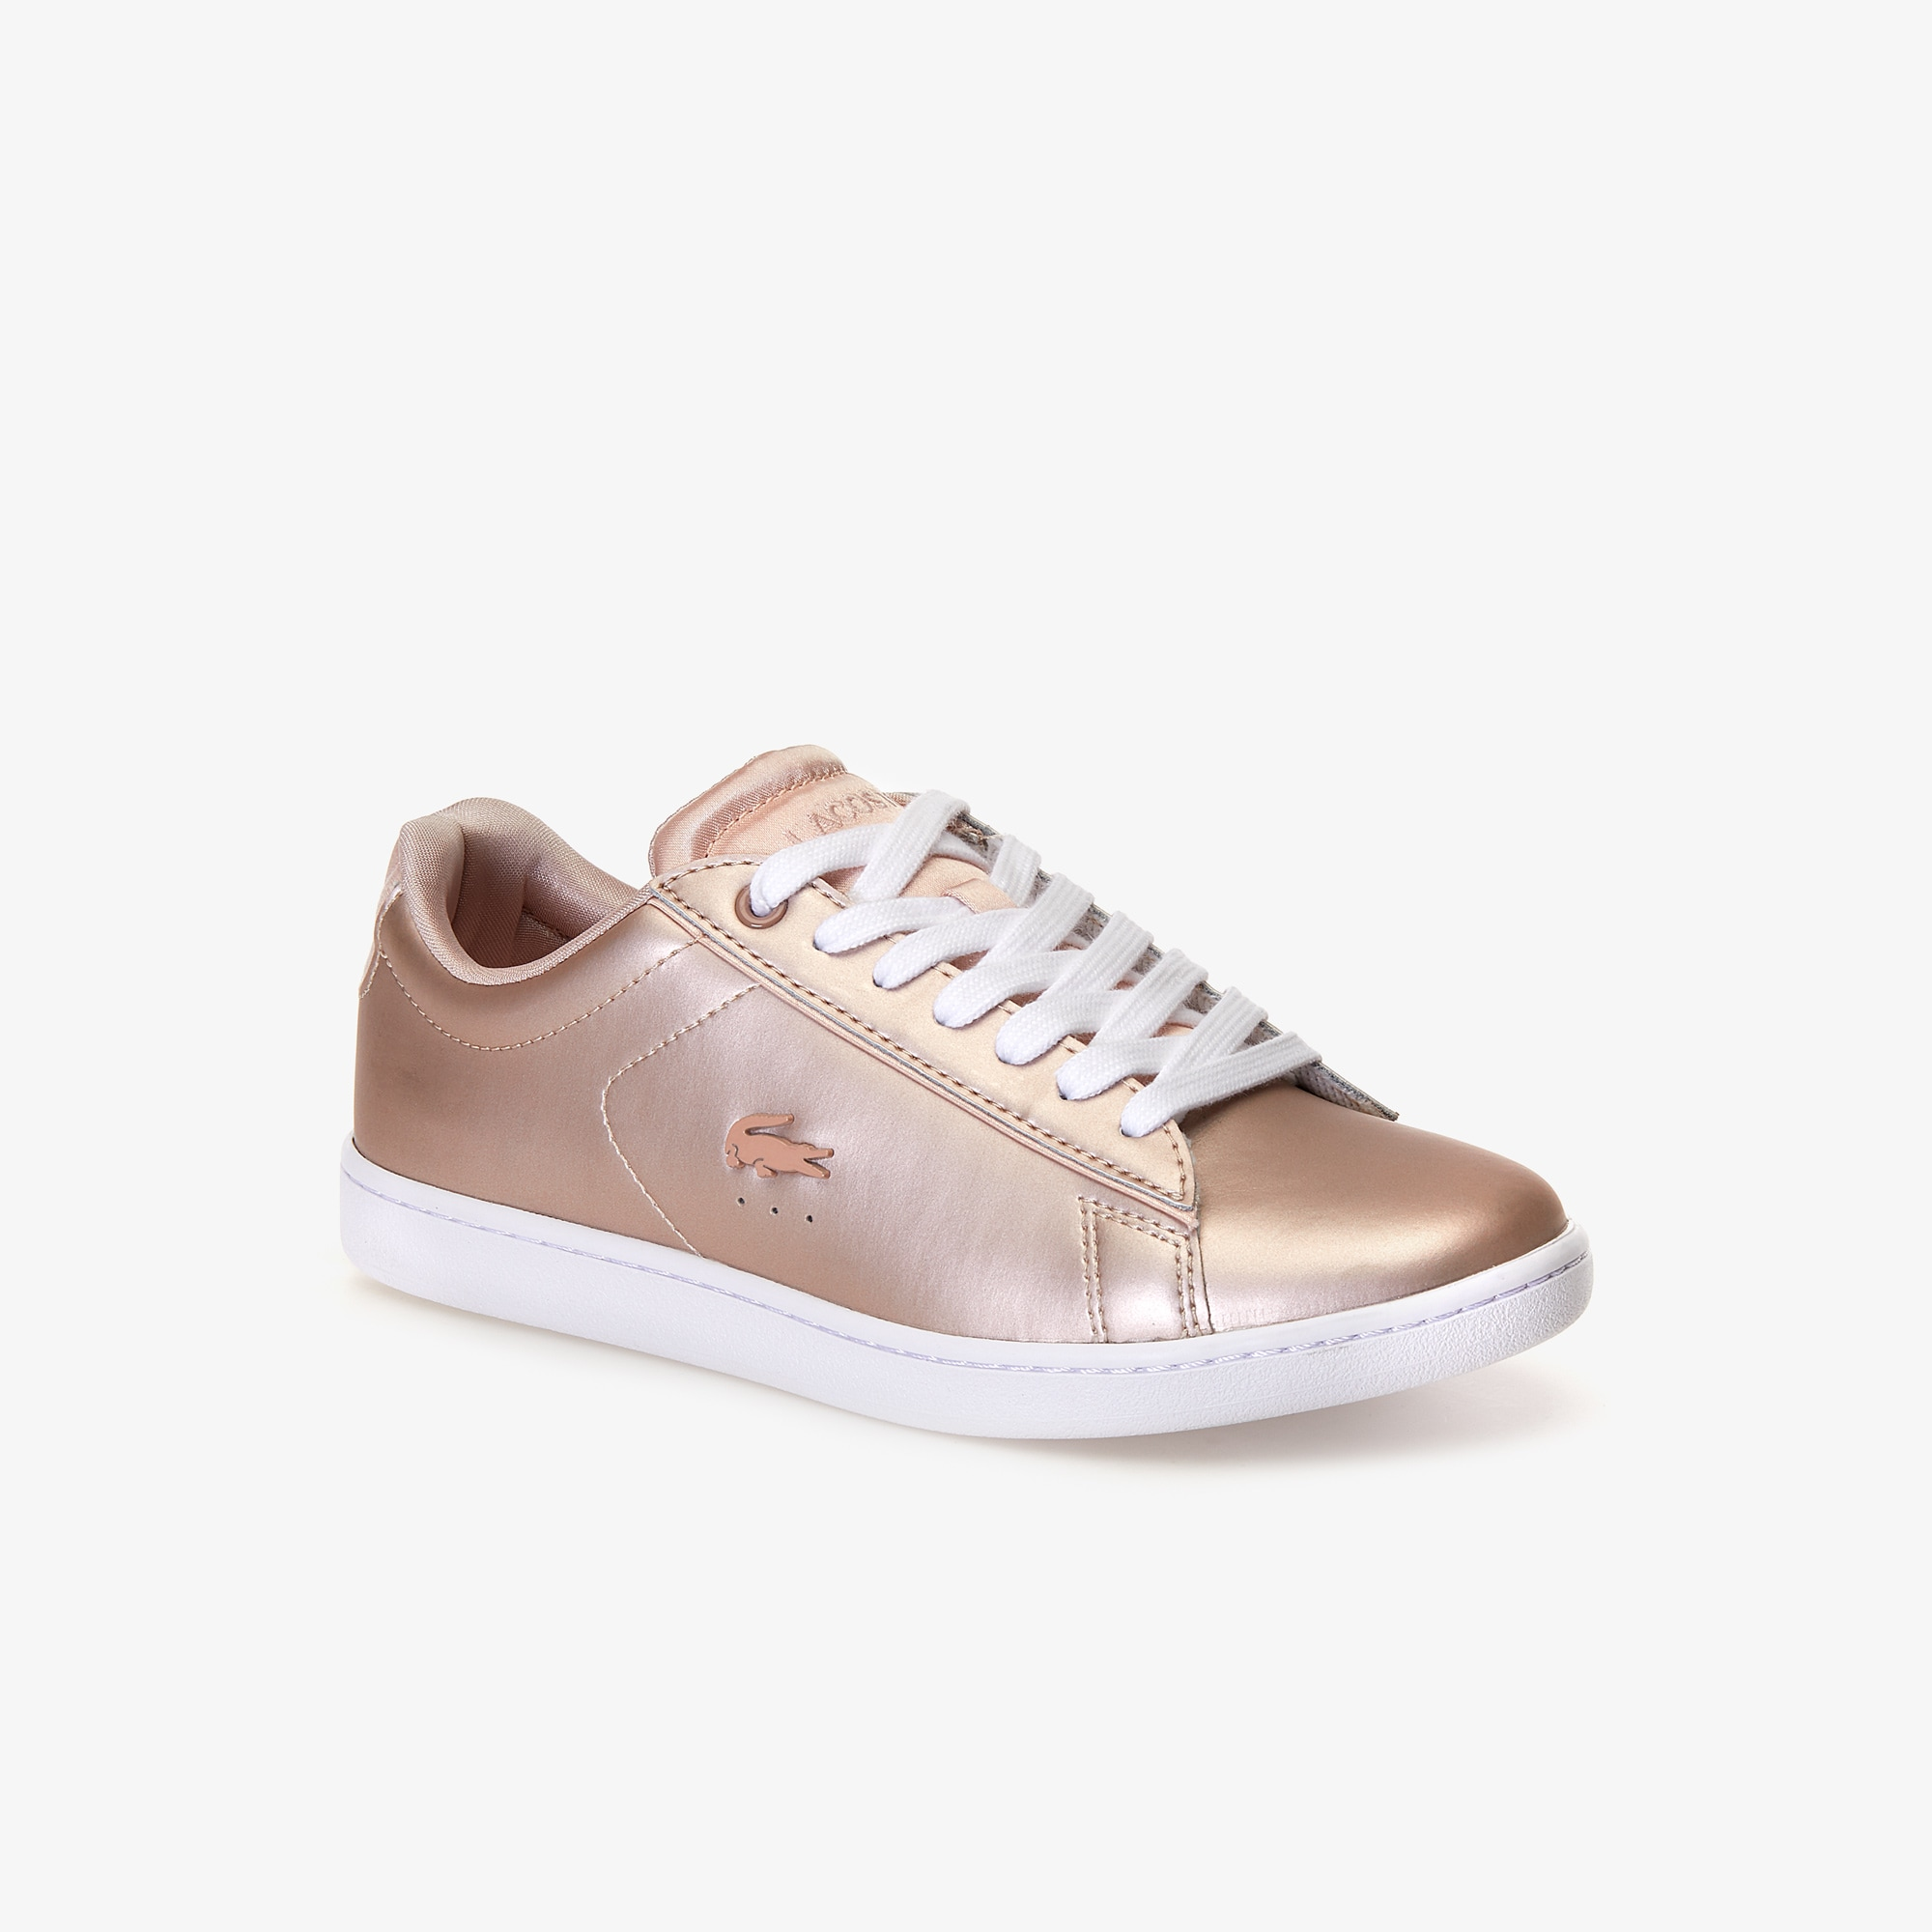 Lacoste Ladies Leather Shoes